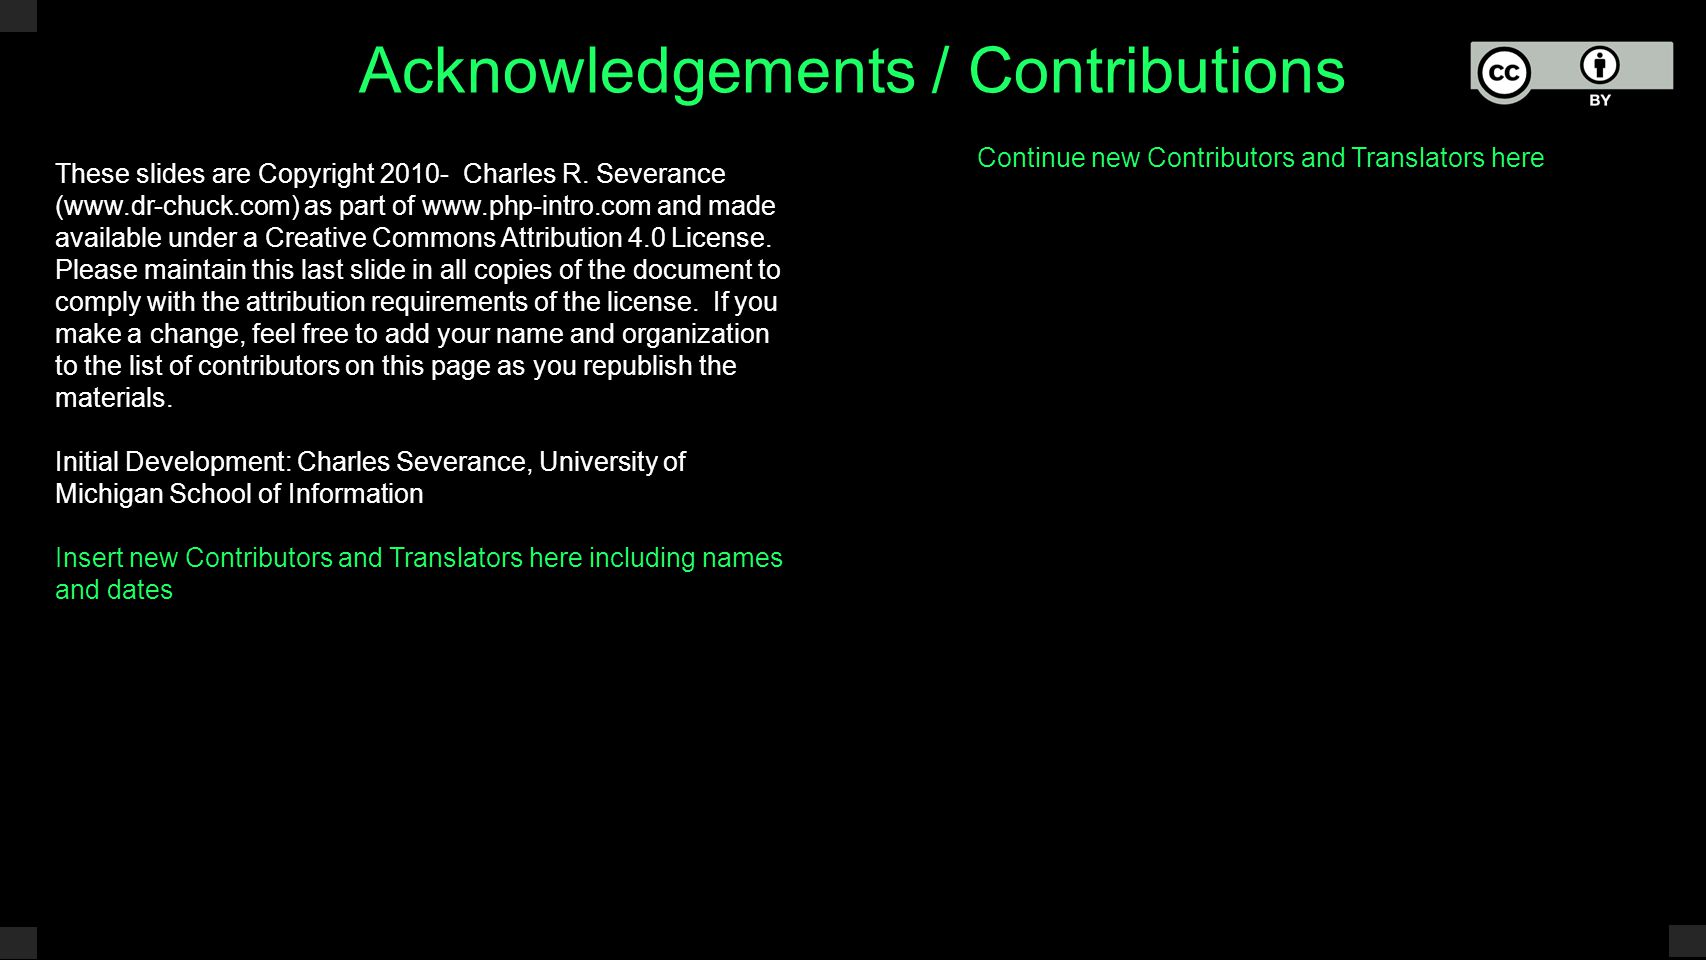 Acknowledgements / Contributions